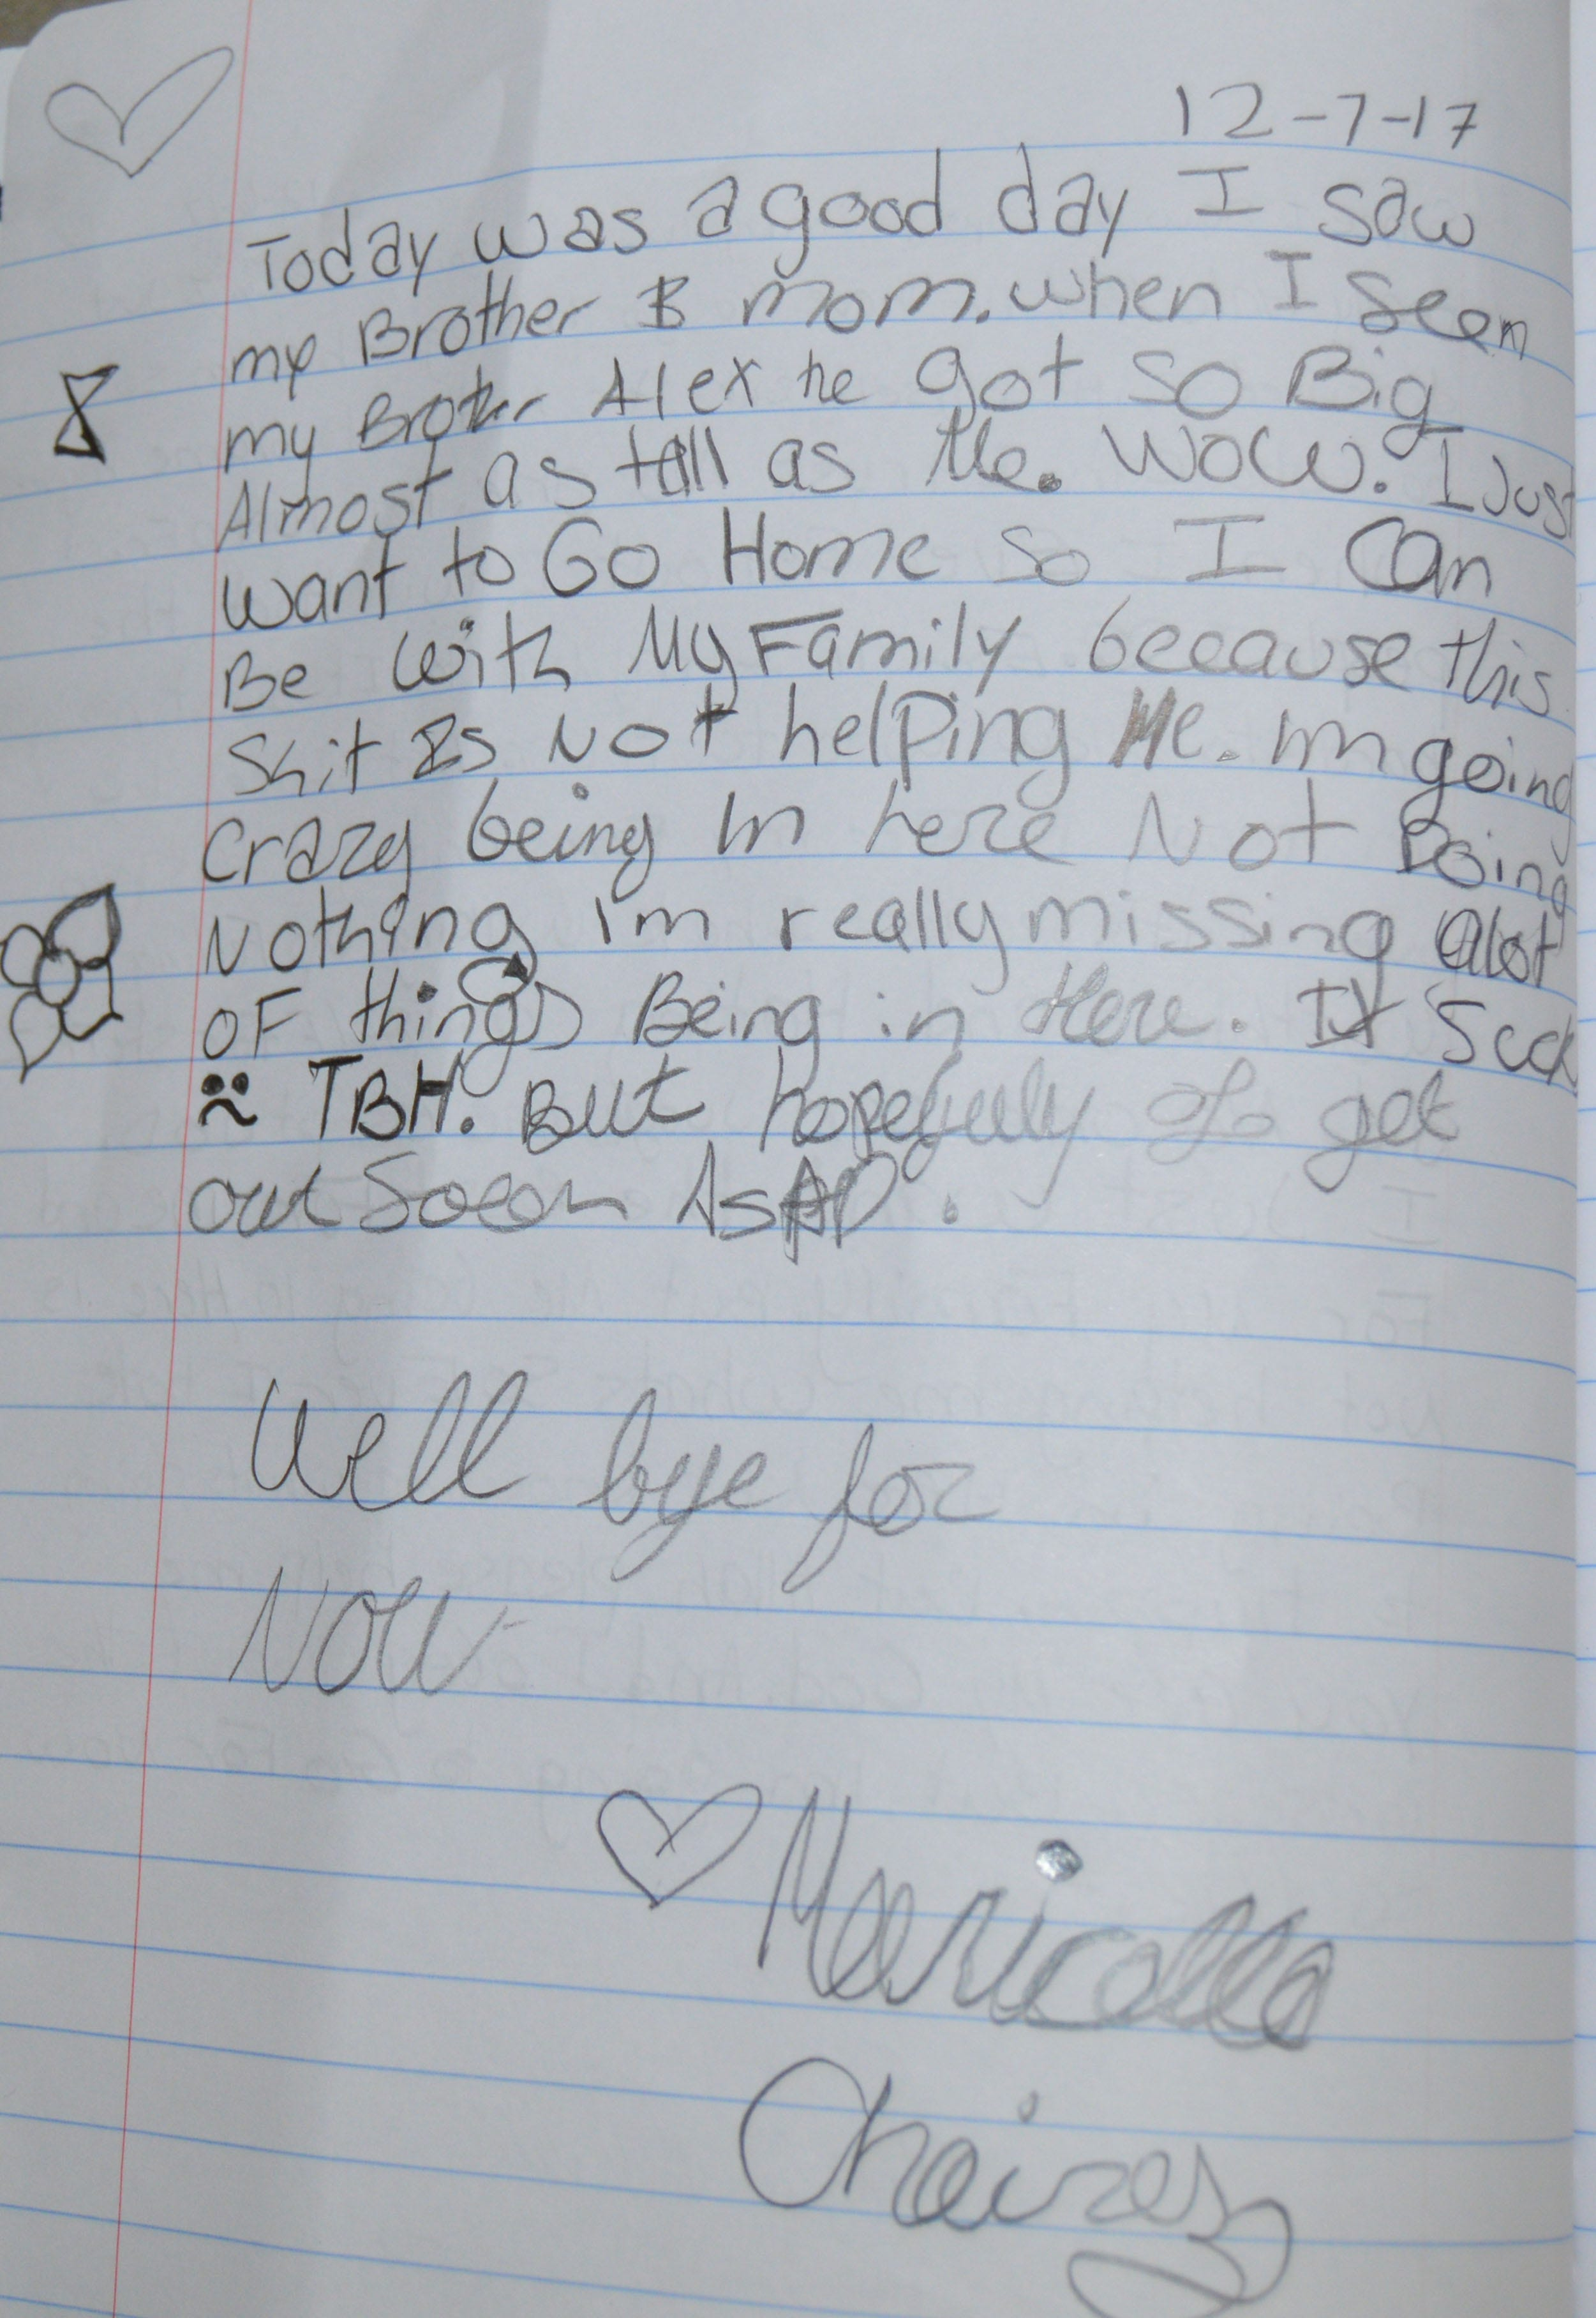 An excerpt from Maricella's journal the last day she saw her family.